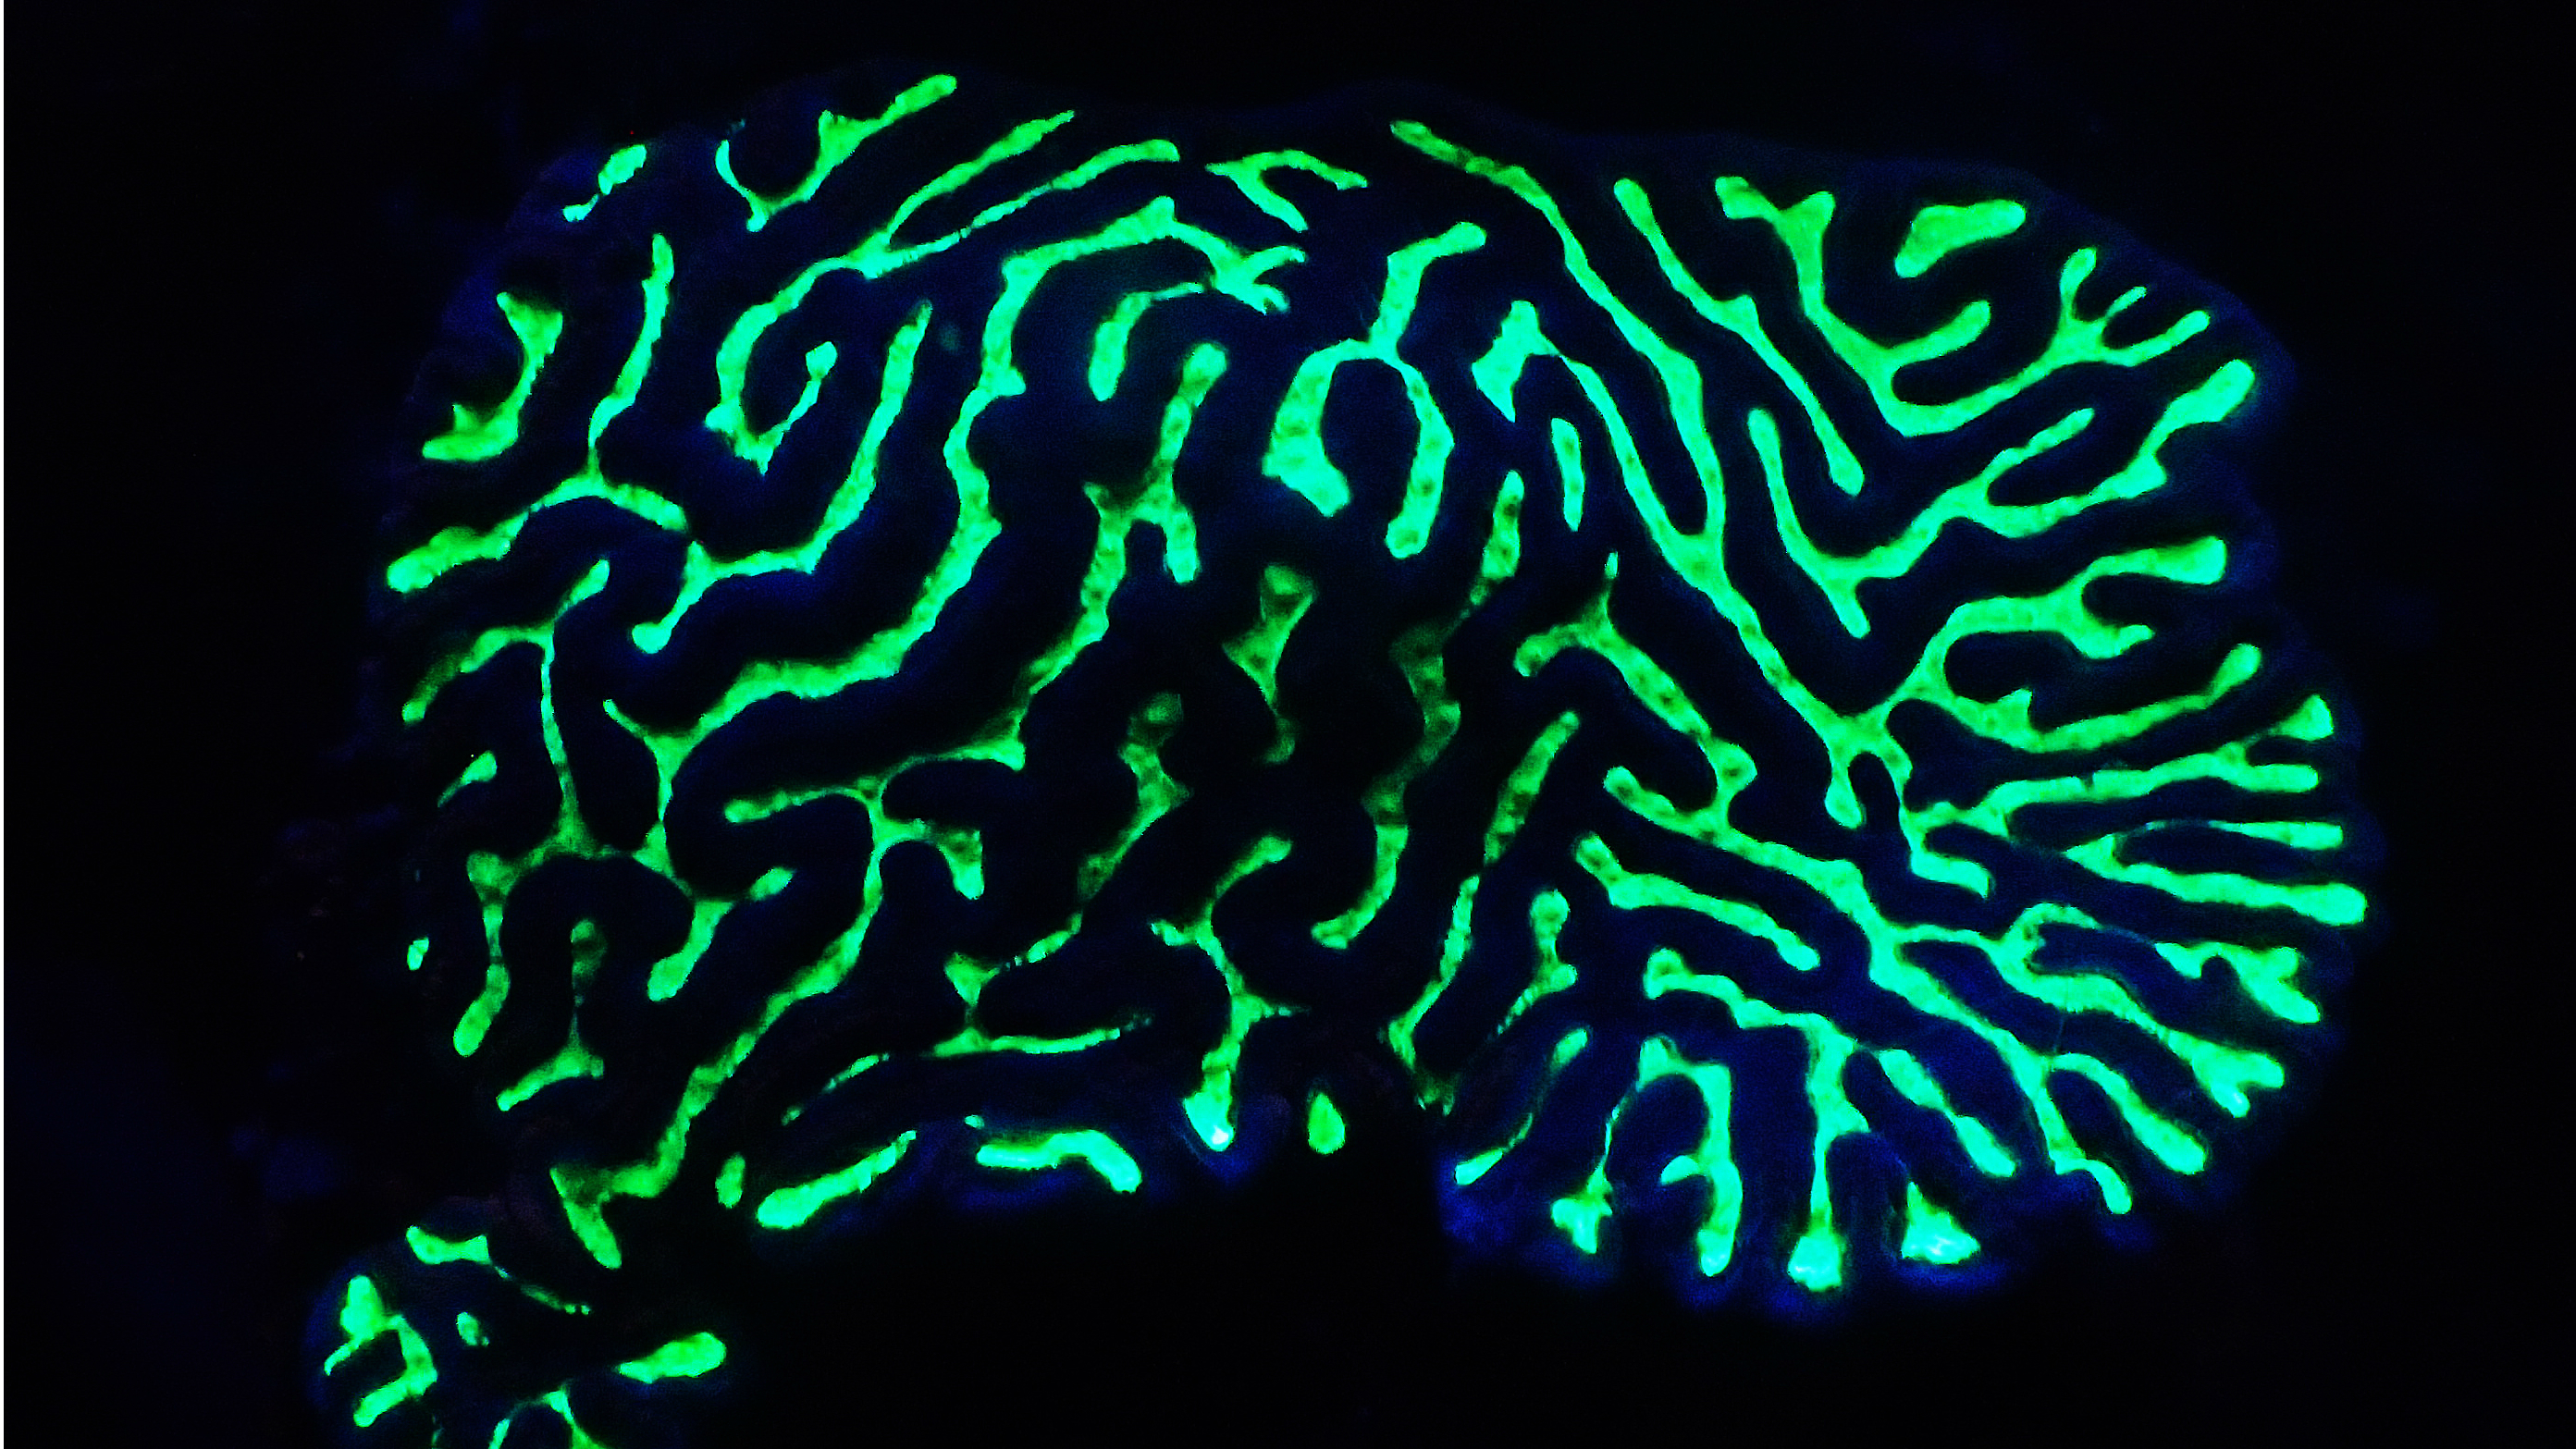 corals-from-shallow-water-of-the-red-sea-are-mostly-green-fluorescent-as-this-platygyra-coral